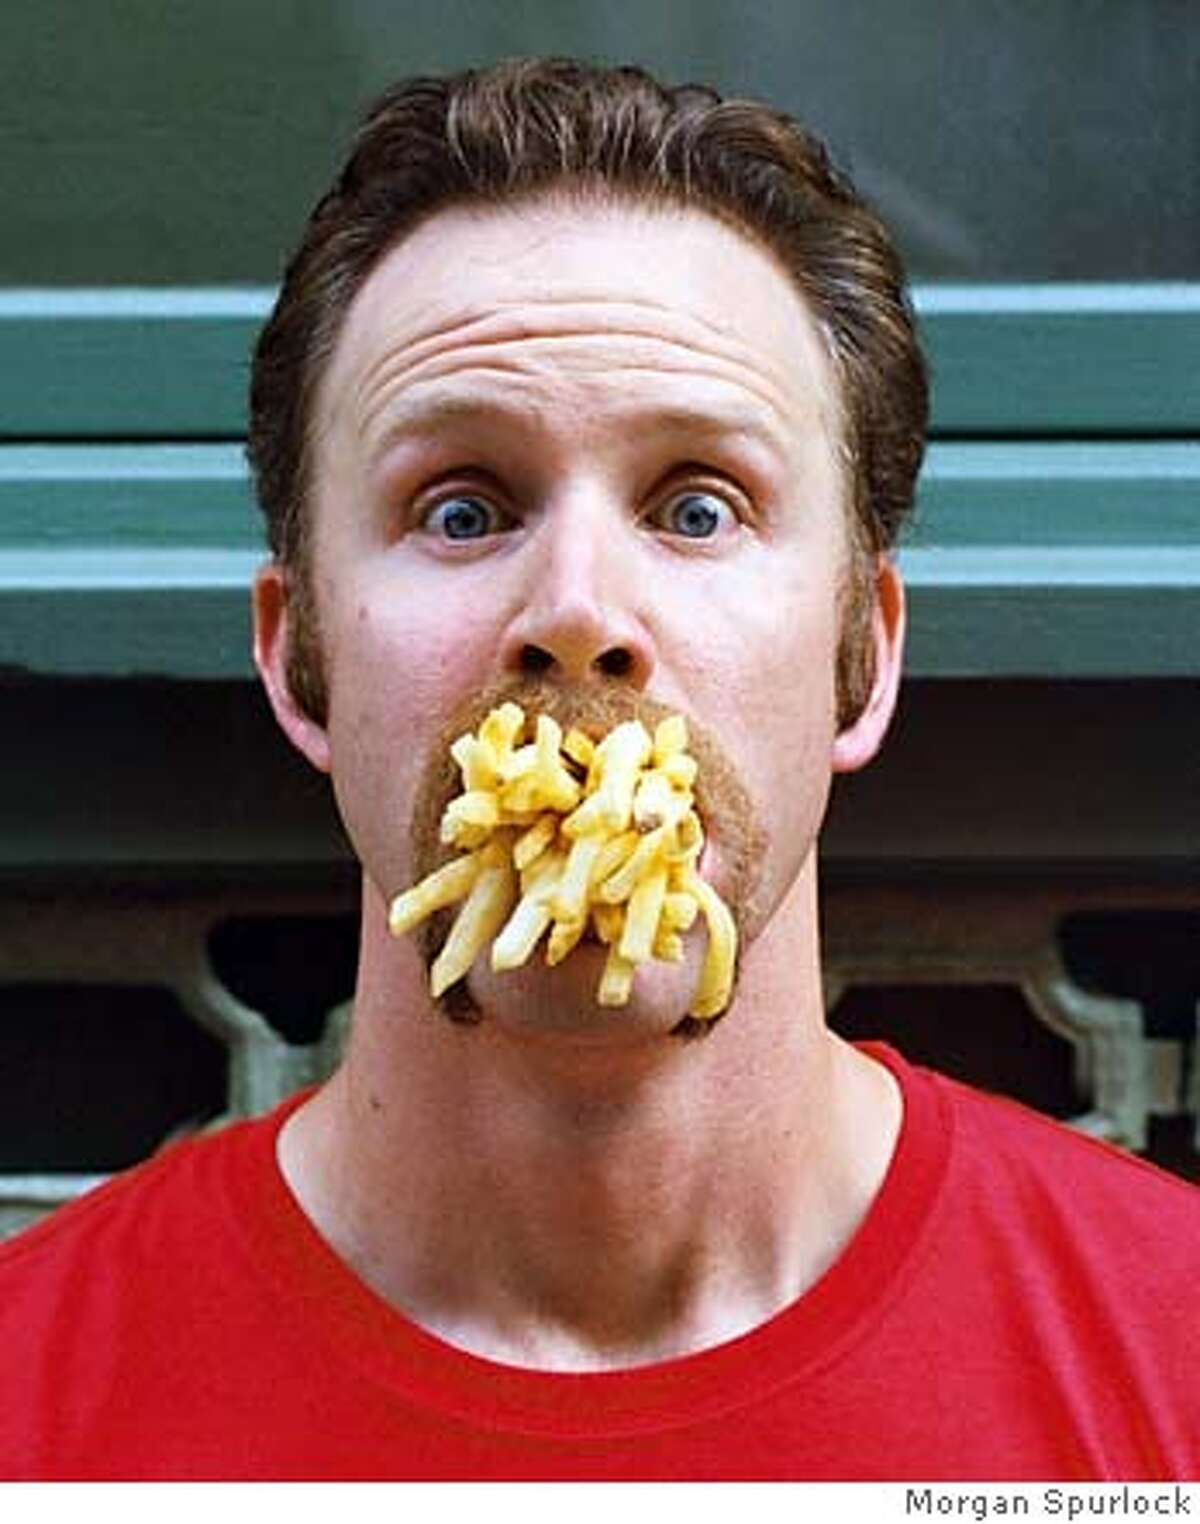 Morgan Spurlock in his own documentary SUPER SIZE ME, playing at 47th San Francisco International Film Festival, April 15 - 29, 2004. ProductNameChronicle ProductNameChronicle ProductNameChronicle ProductNameChronicle ProductNameChronicle